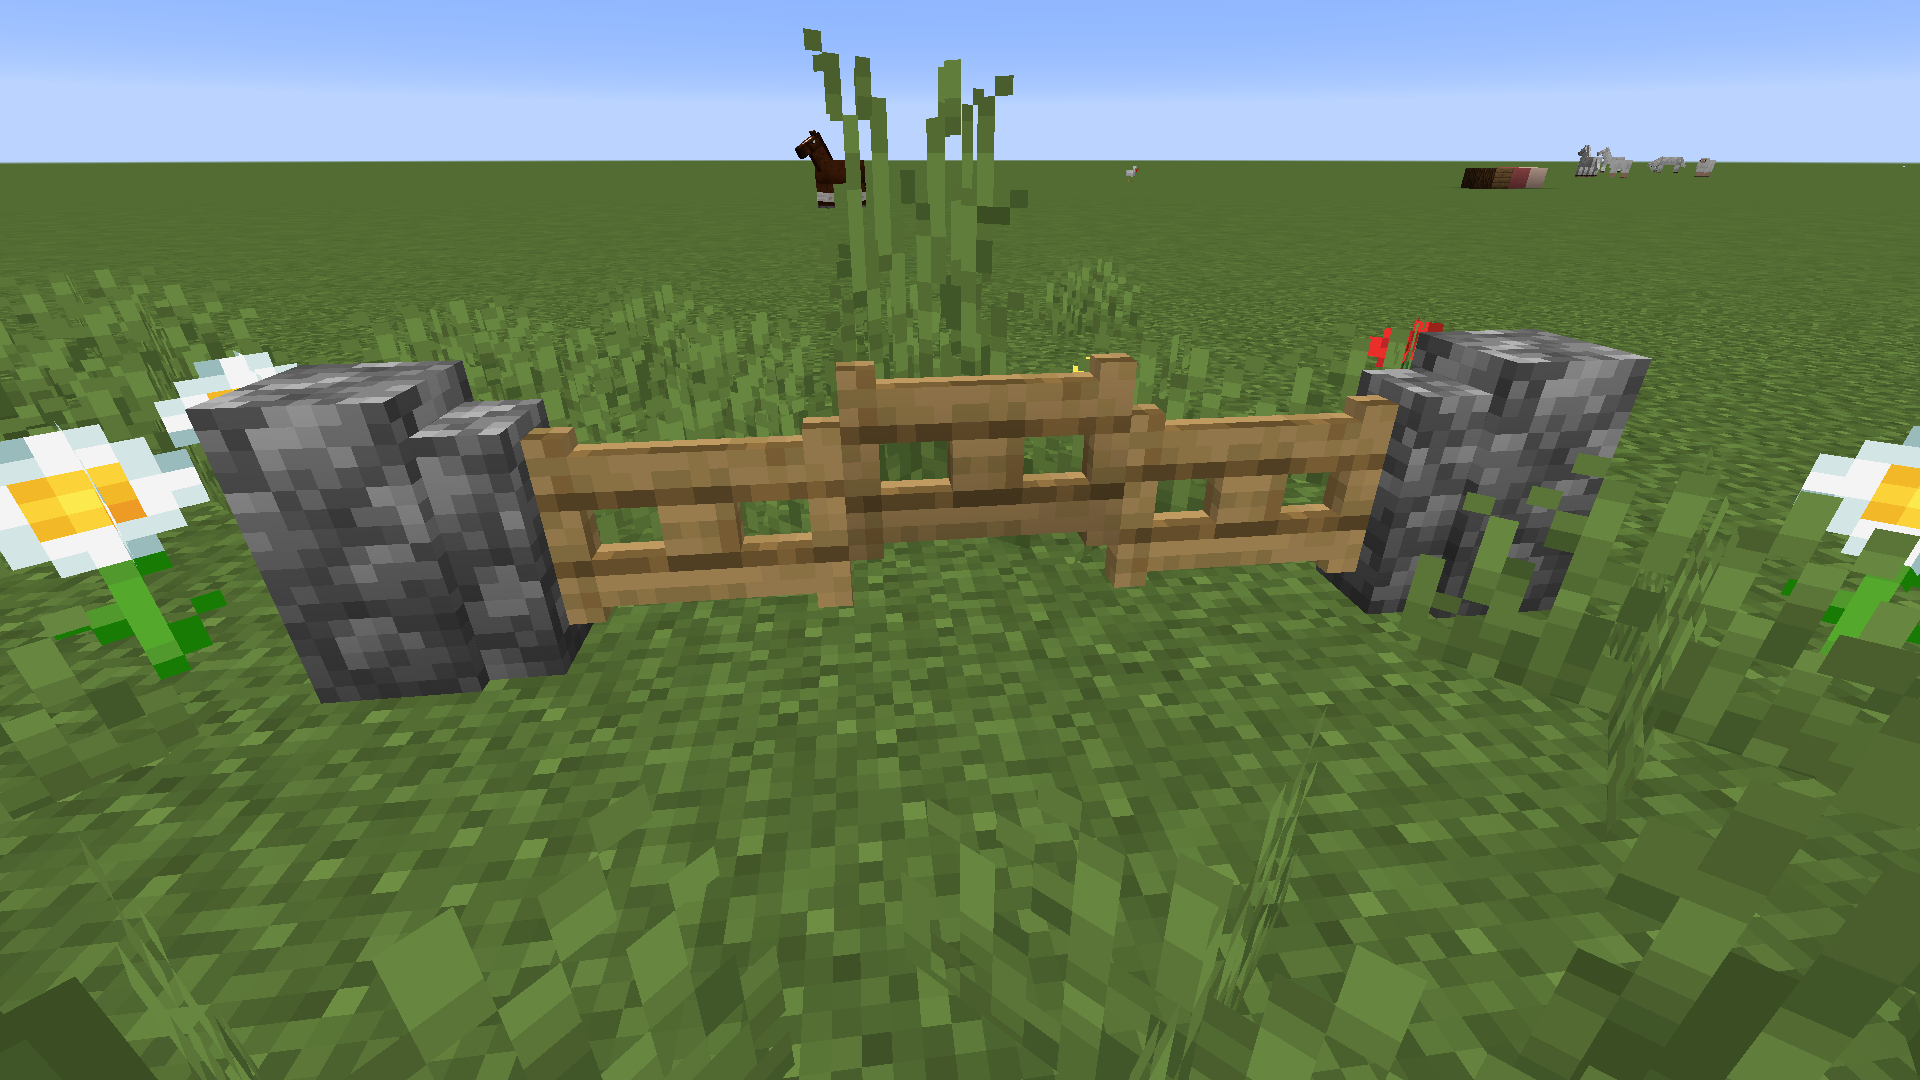 If you place a fence gate next to a wall you get a really nice wavy pattern  : DetailCraft | Fence gate, Minecraft, Fence design